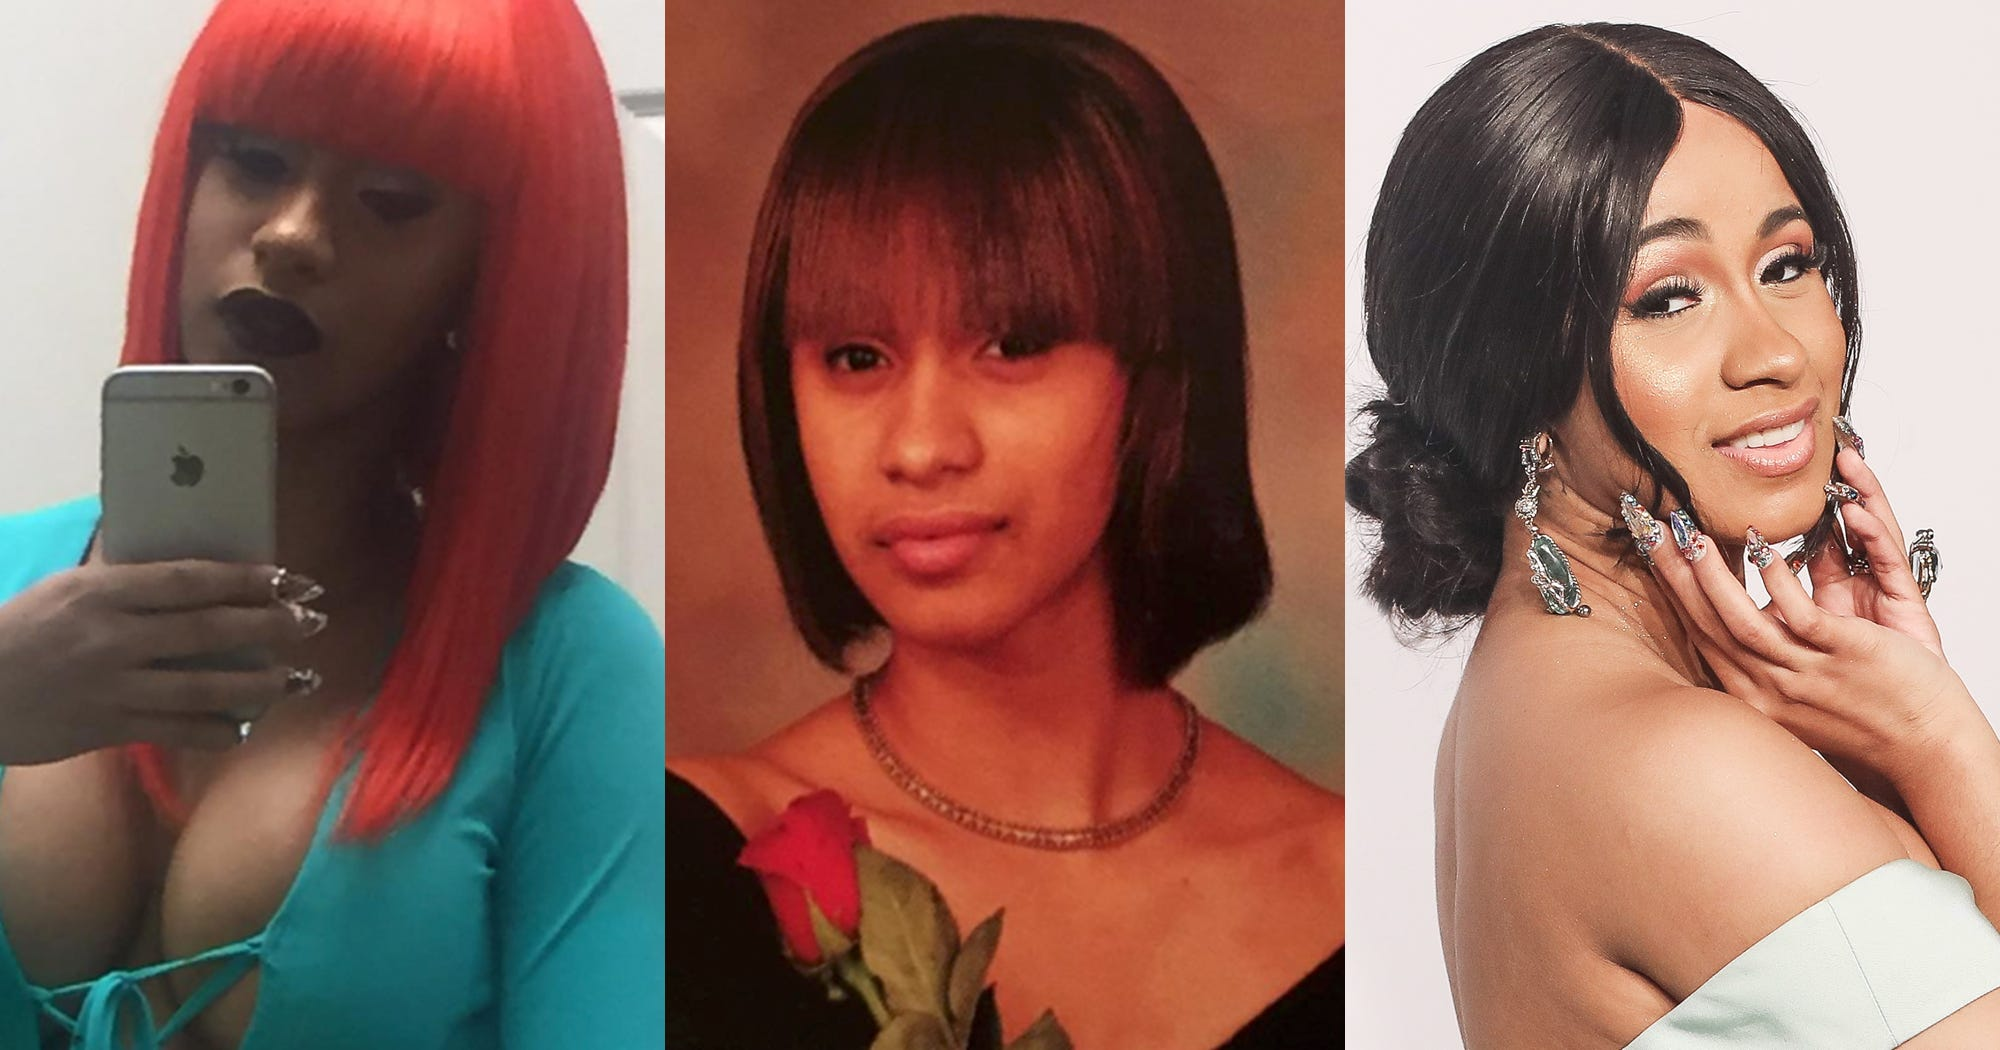 Cardi B Before Fame: Cardi B Rapper Hair Makeup Trends Looks Over The Years